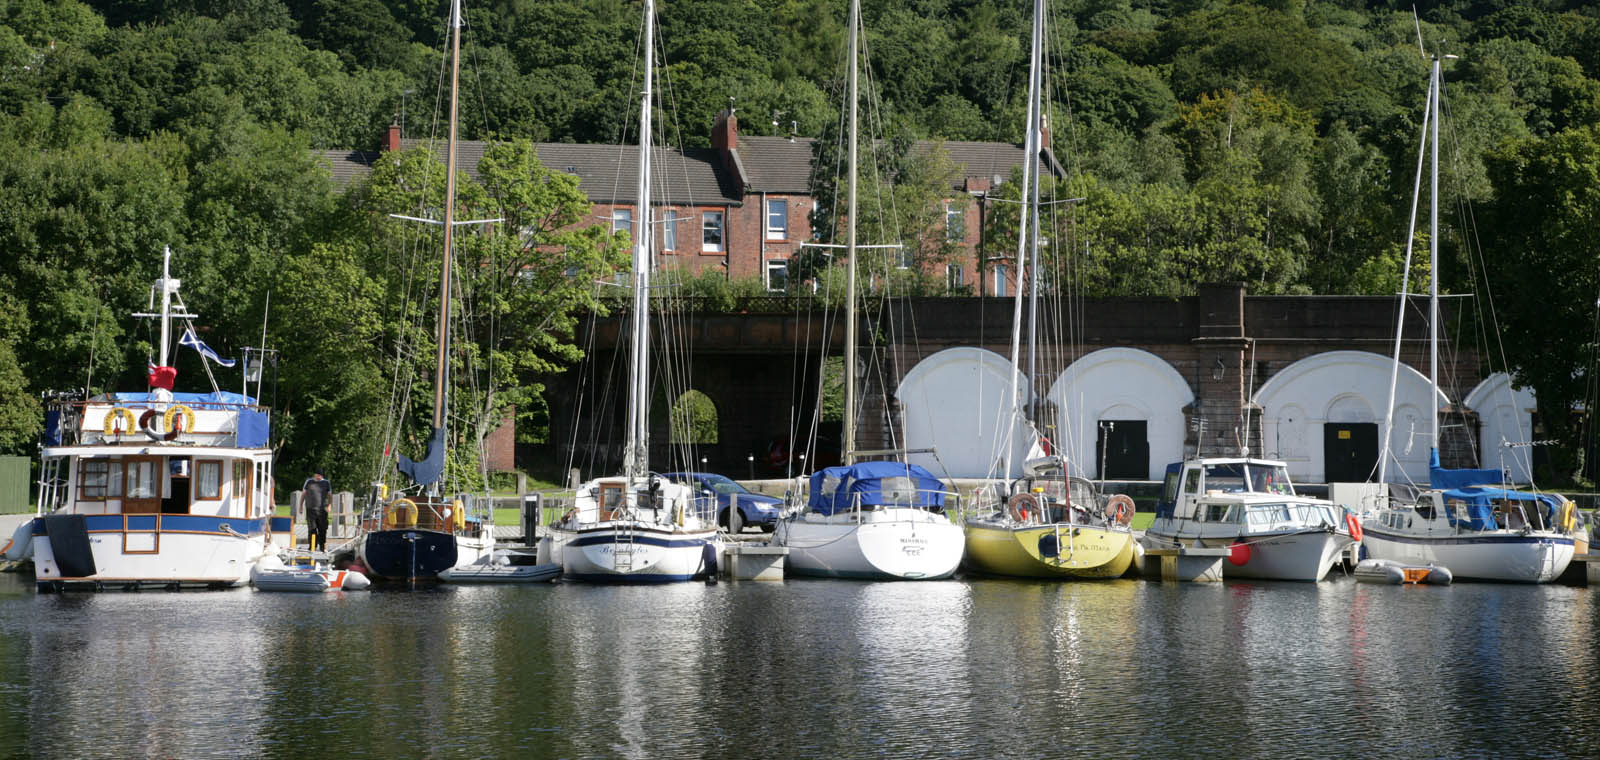 Bowling Basin at Old Kipatrick